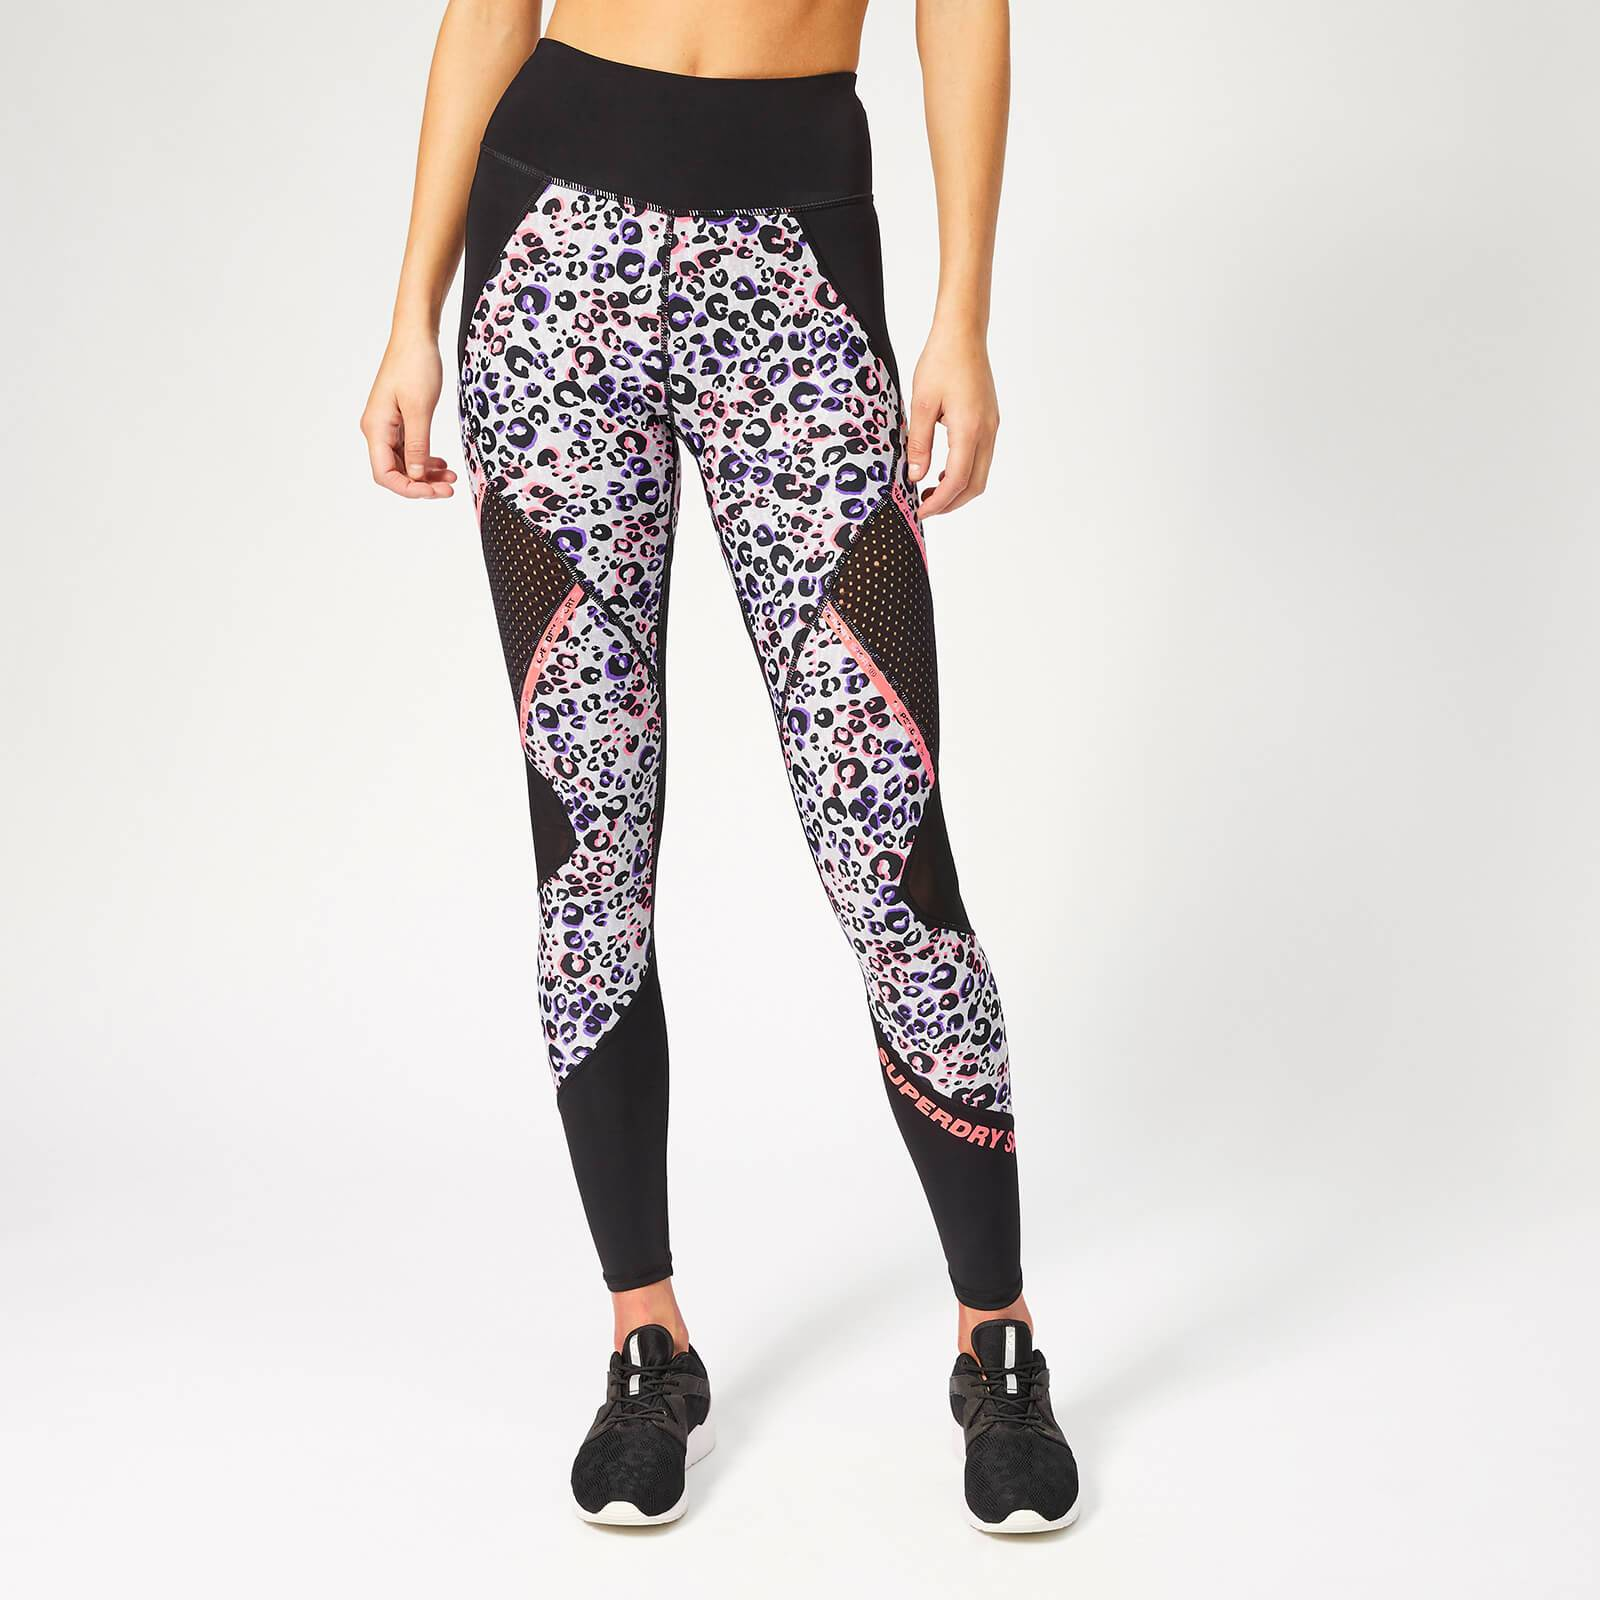 Superdry Sport Women's Active Mesh Panel Leggings - Lola Leopard Coral Print - XXS/UK 6 - Multi